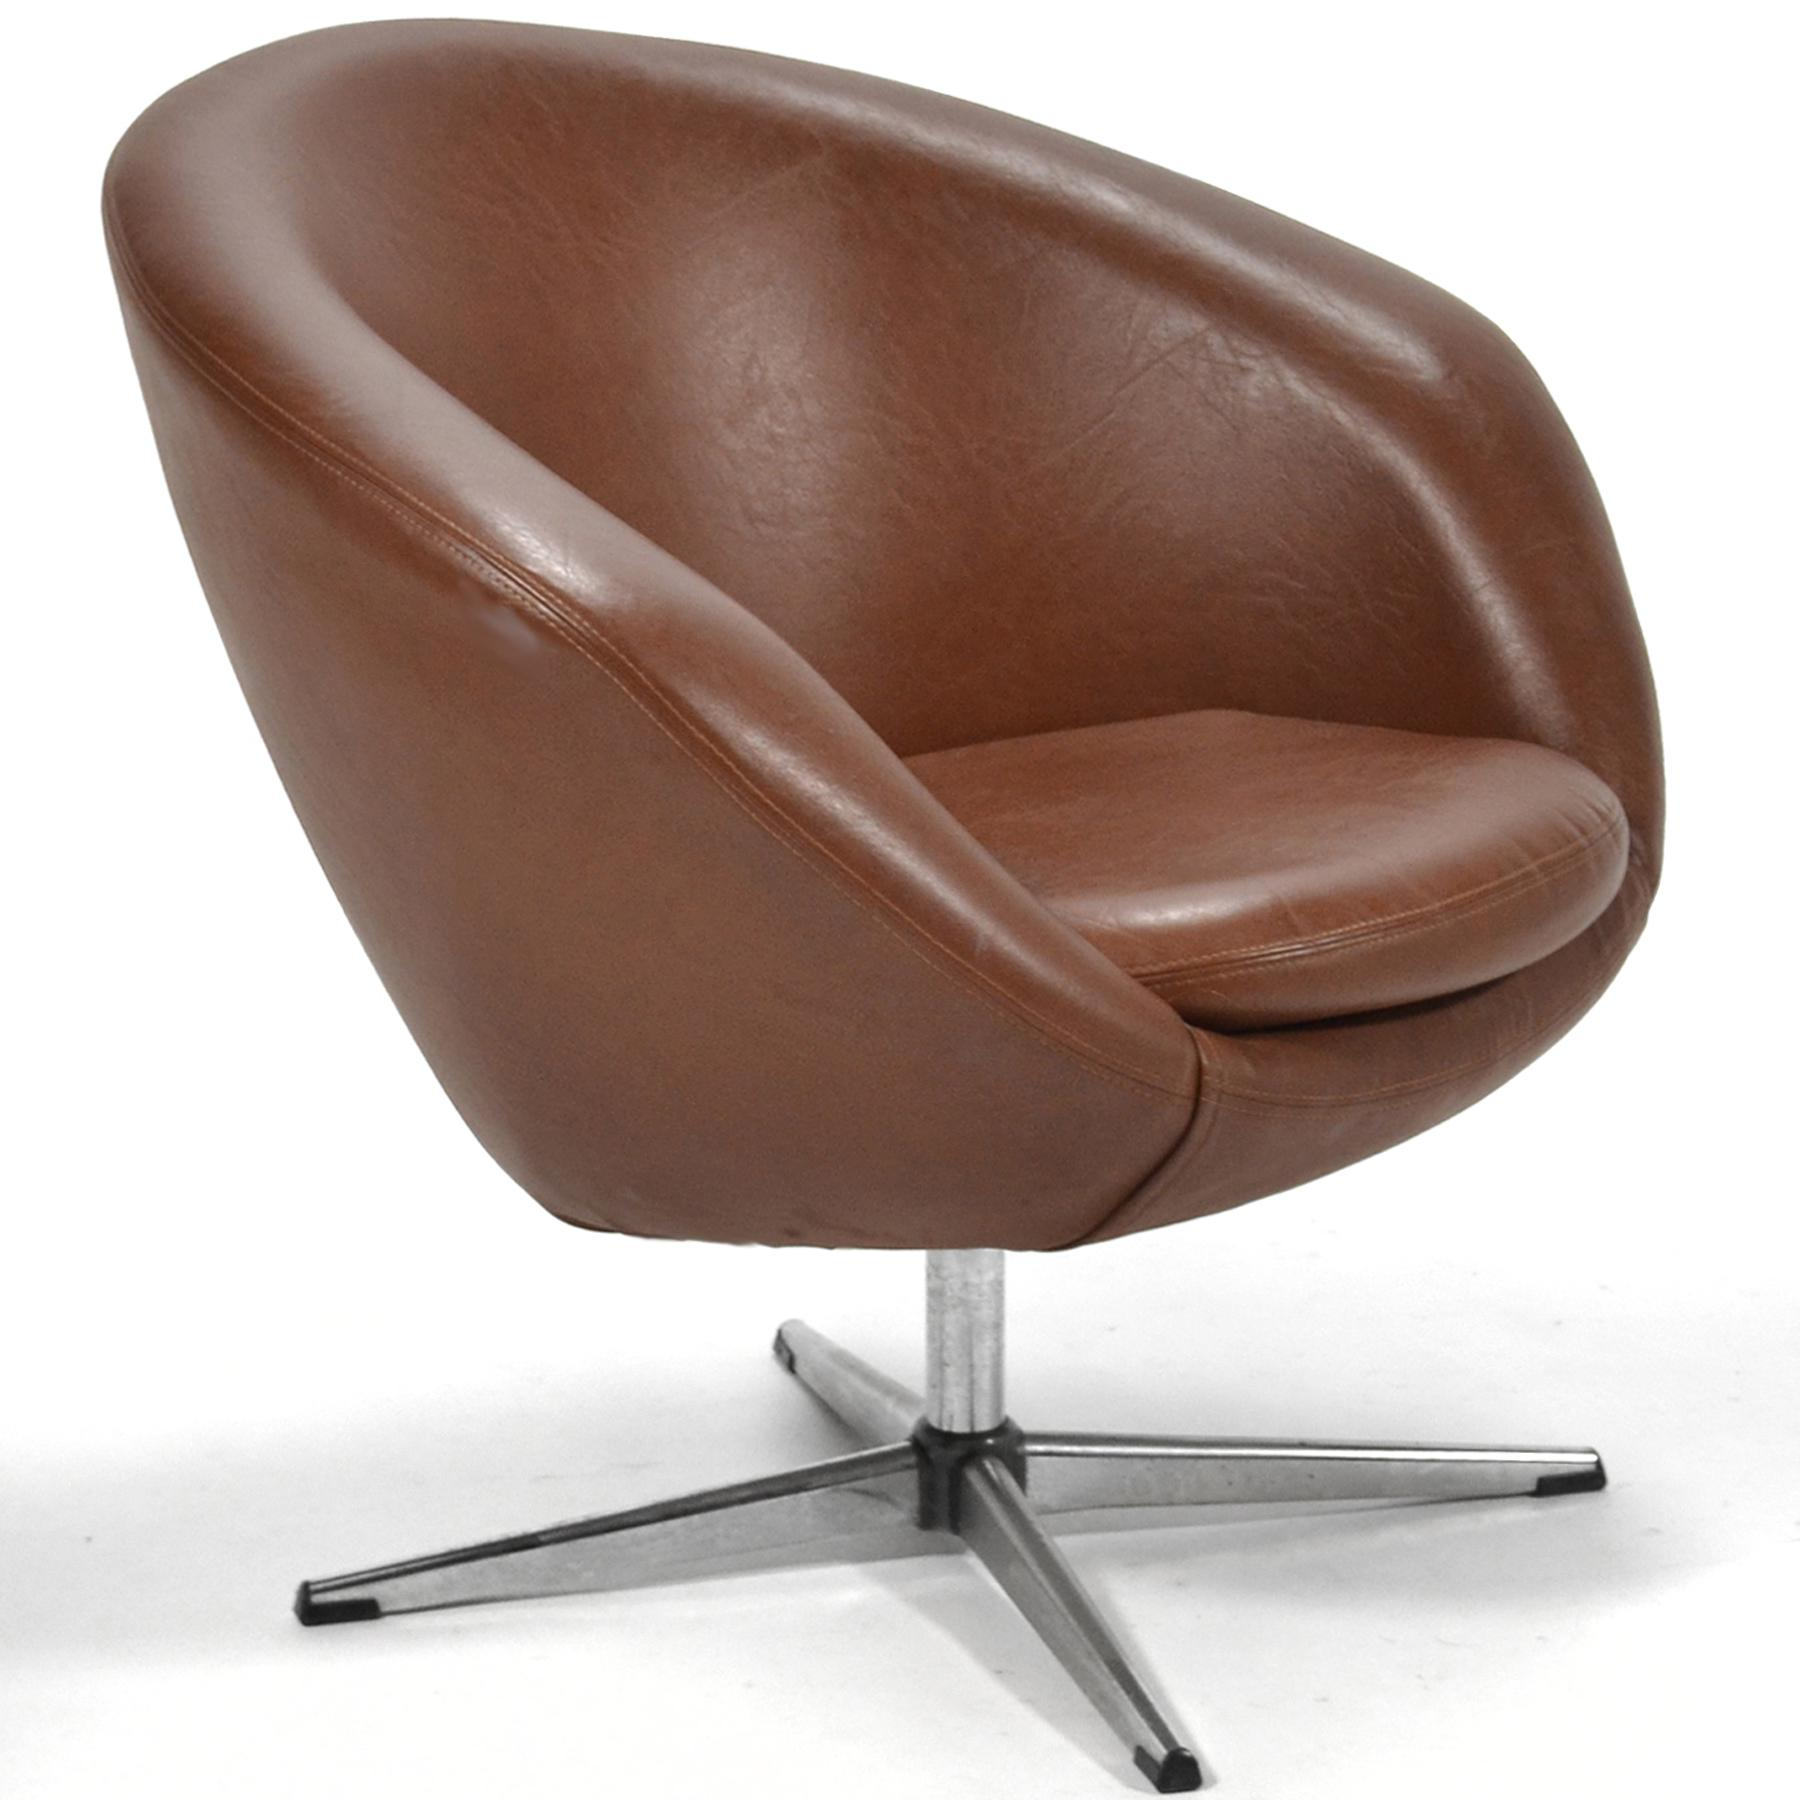 swivel lounge chairs small wingback chair overman brown chairish for sale image 9 of